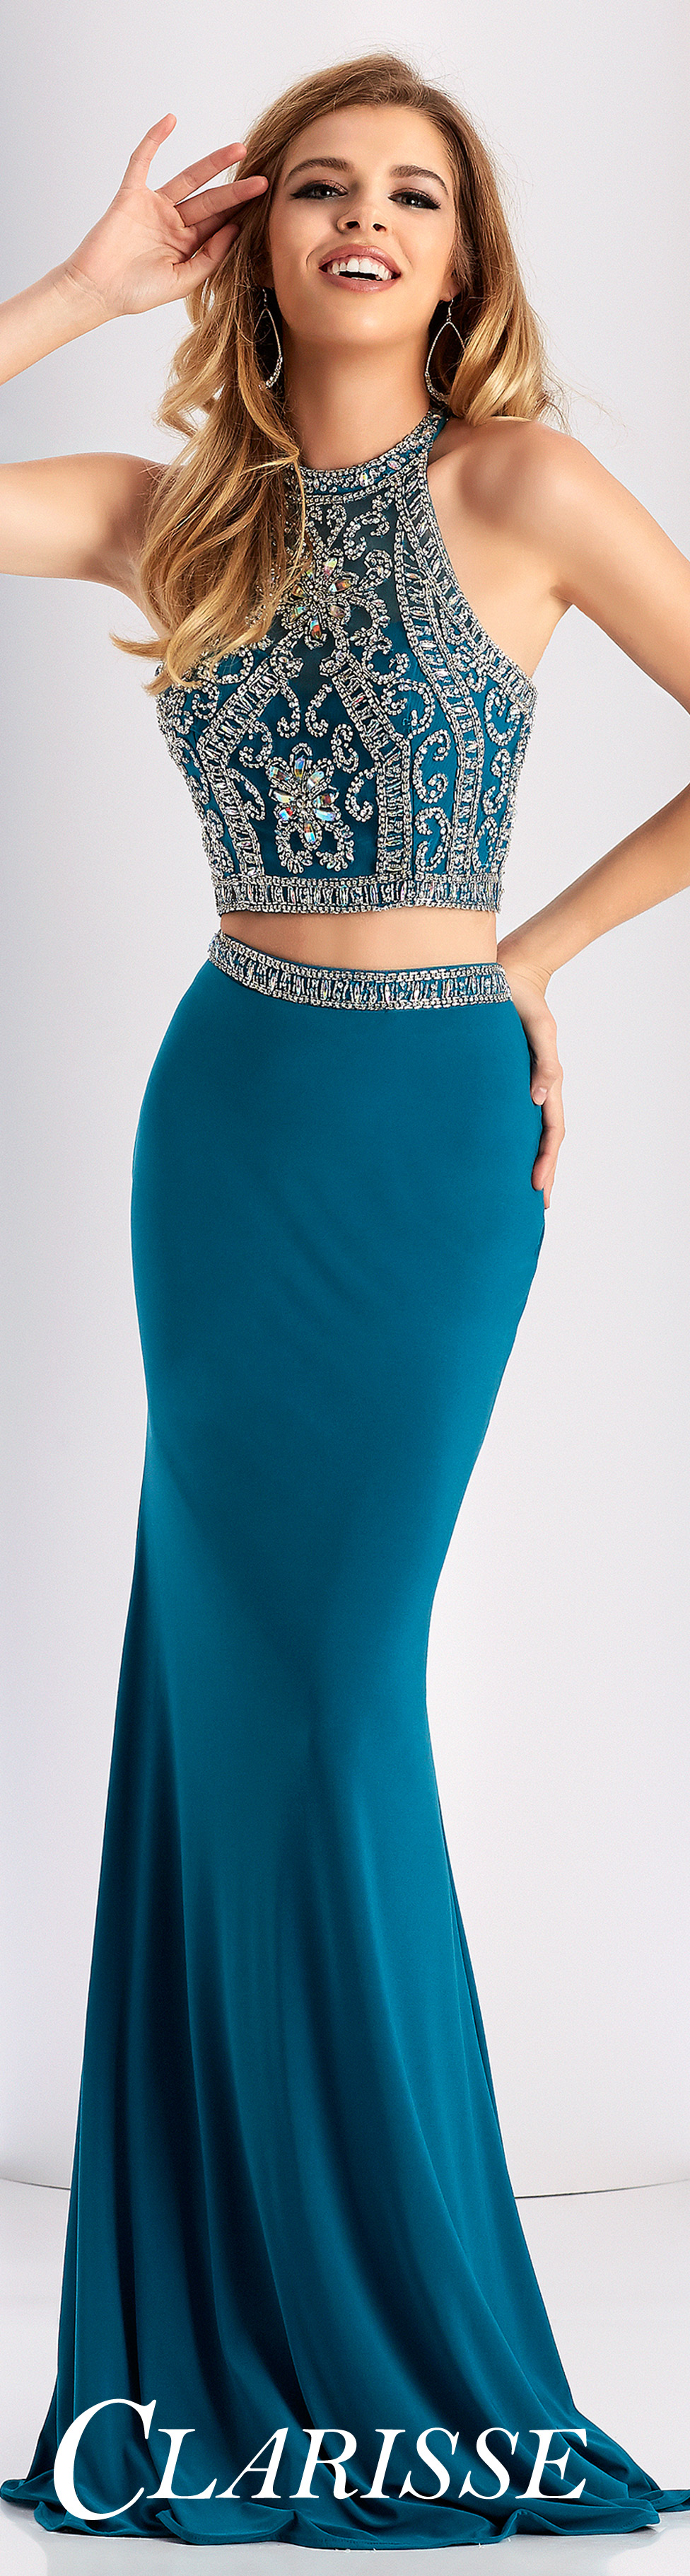 Clarisse Prom Dress 3006. Two piece fitted prom dress with beaded ...